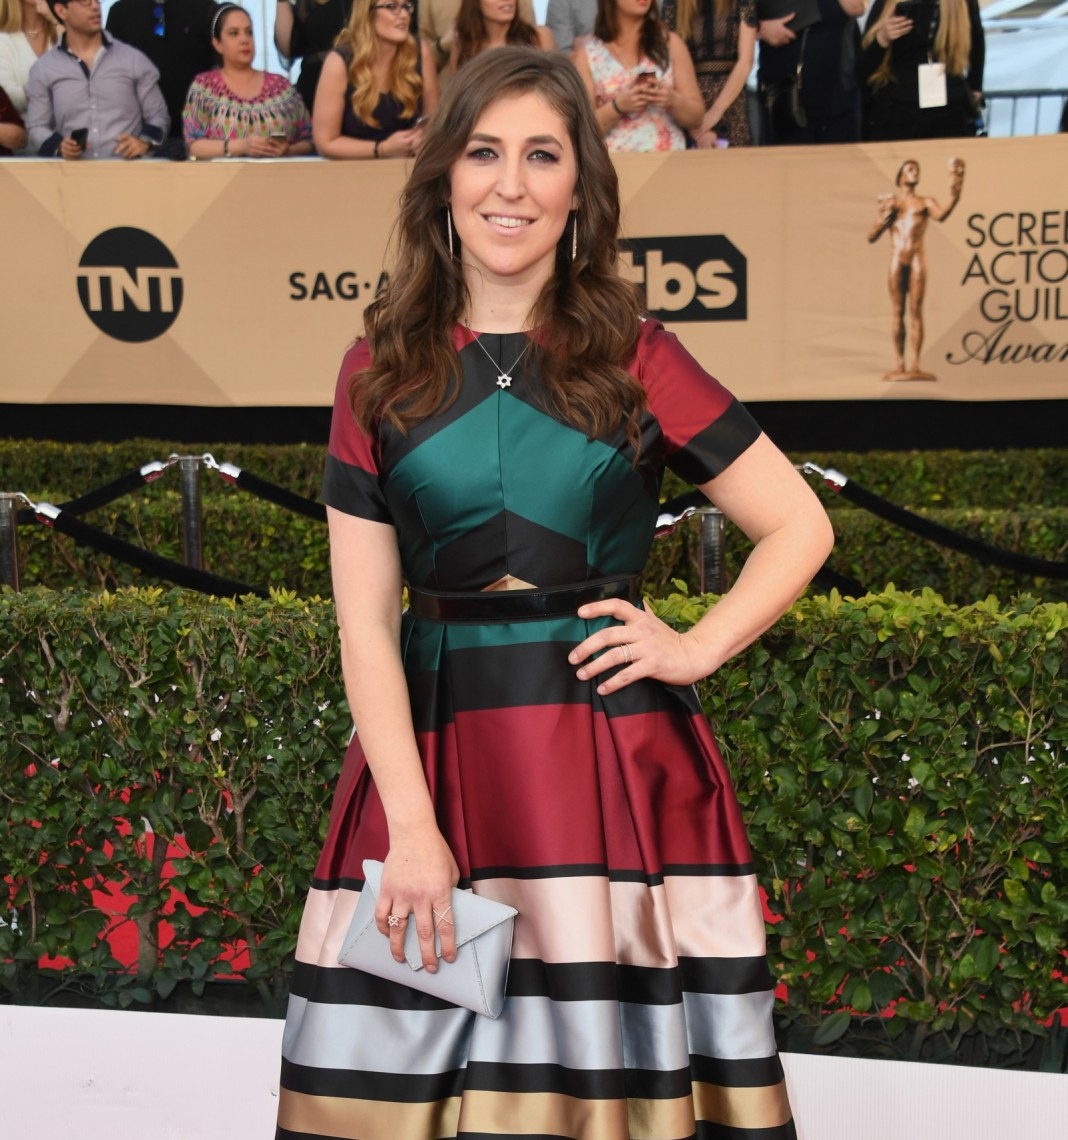 """Mayim Bialik: """"Getting Naked Is Not the Only Way to Feel Empowered"""""""